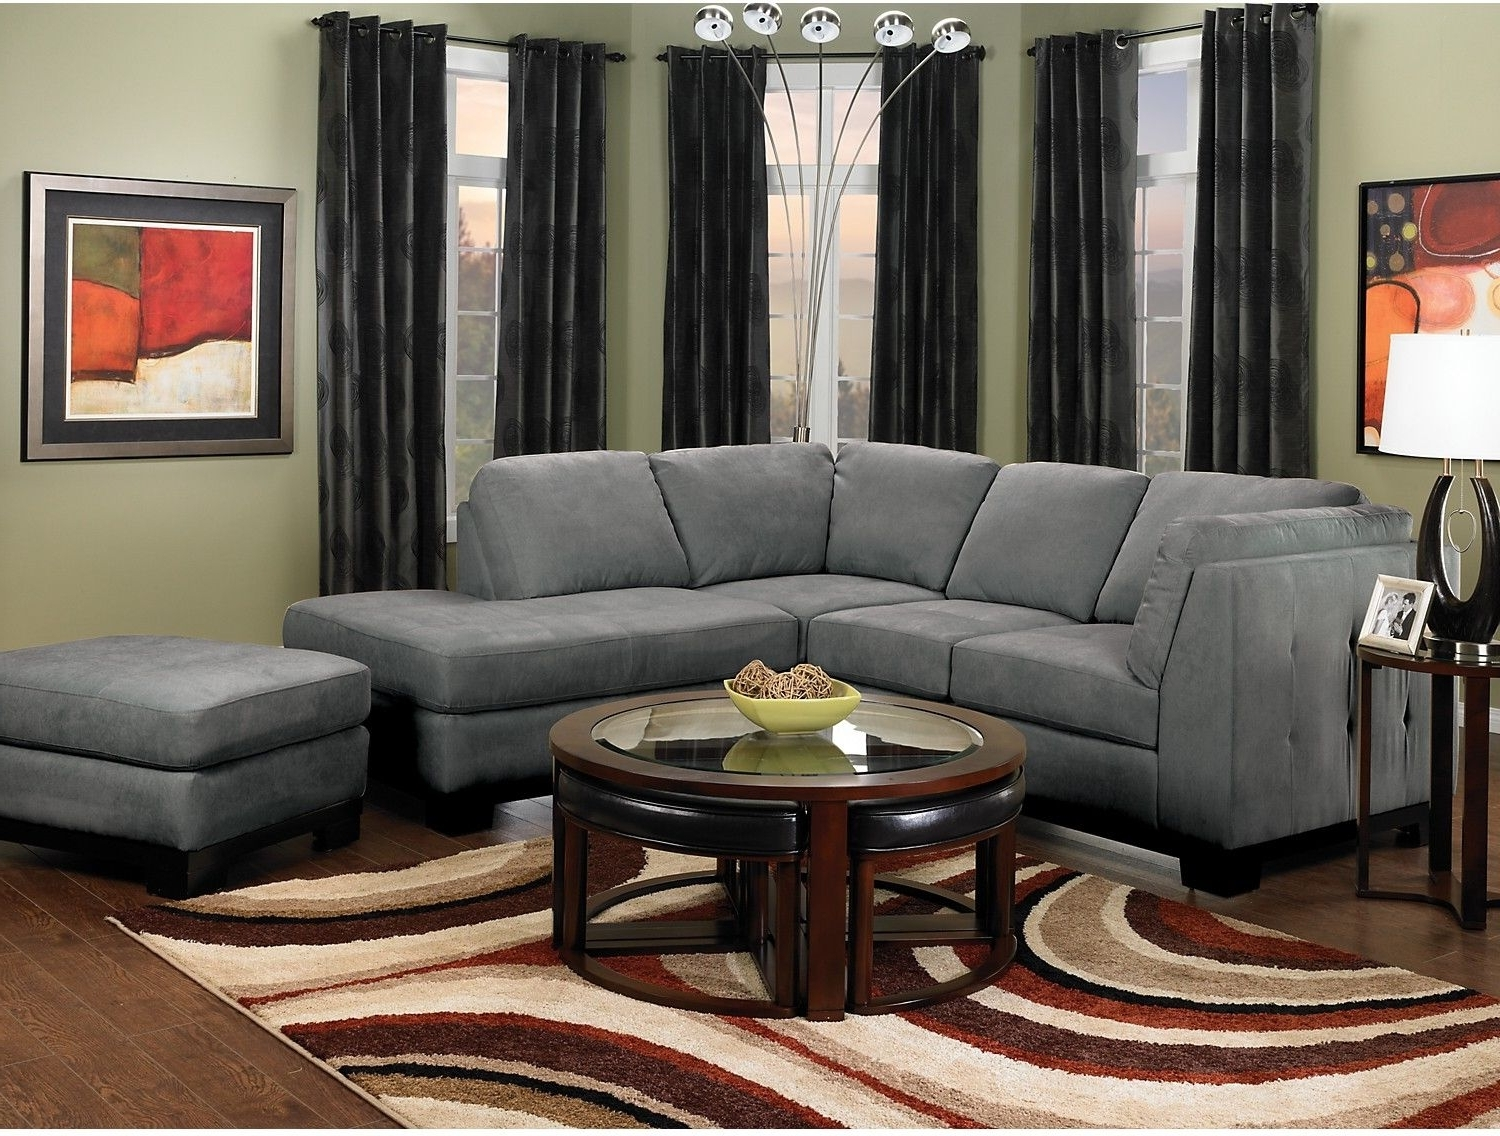 Sectional Sofas At The Brick Intended For Well Known Oakdale 2 Piece Microsuede Sectional W/right Facing Chaise – Grey (View 14 of 20)